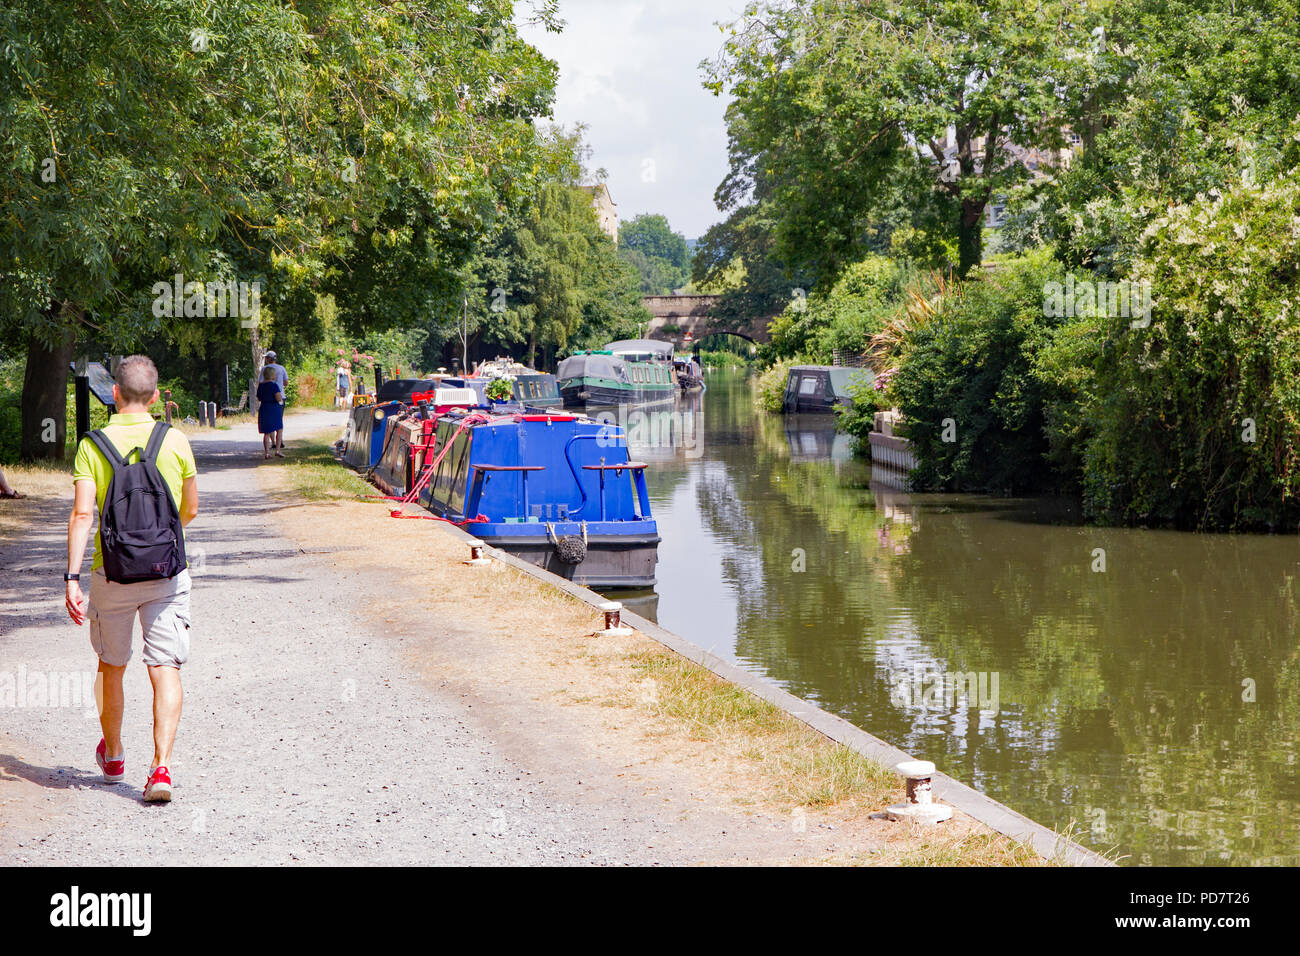 People walk along the Avon and Somerset canal towpath through Bath, England, on a bright sunny day with colourful barges lined up and green overhangin - Stock Image